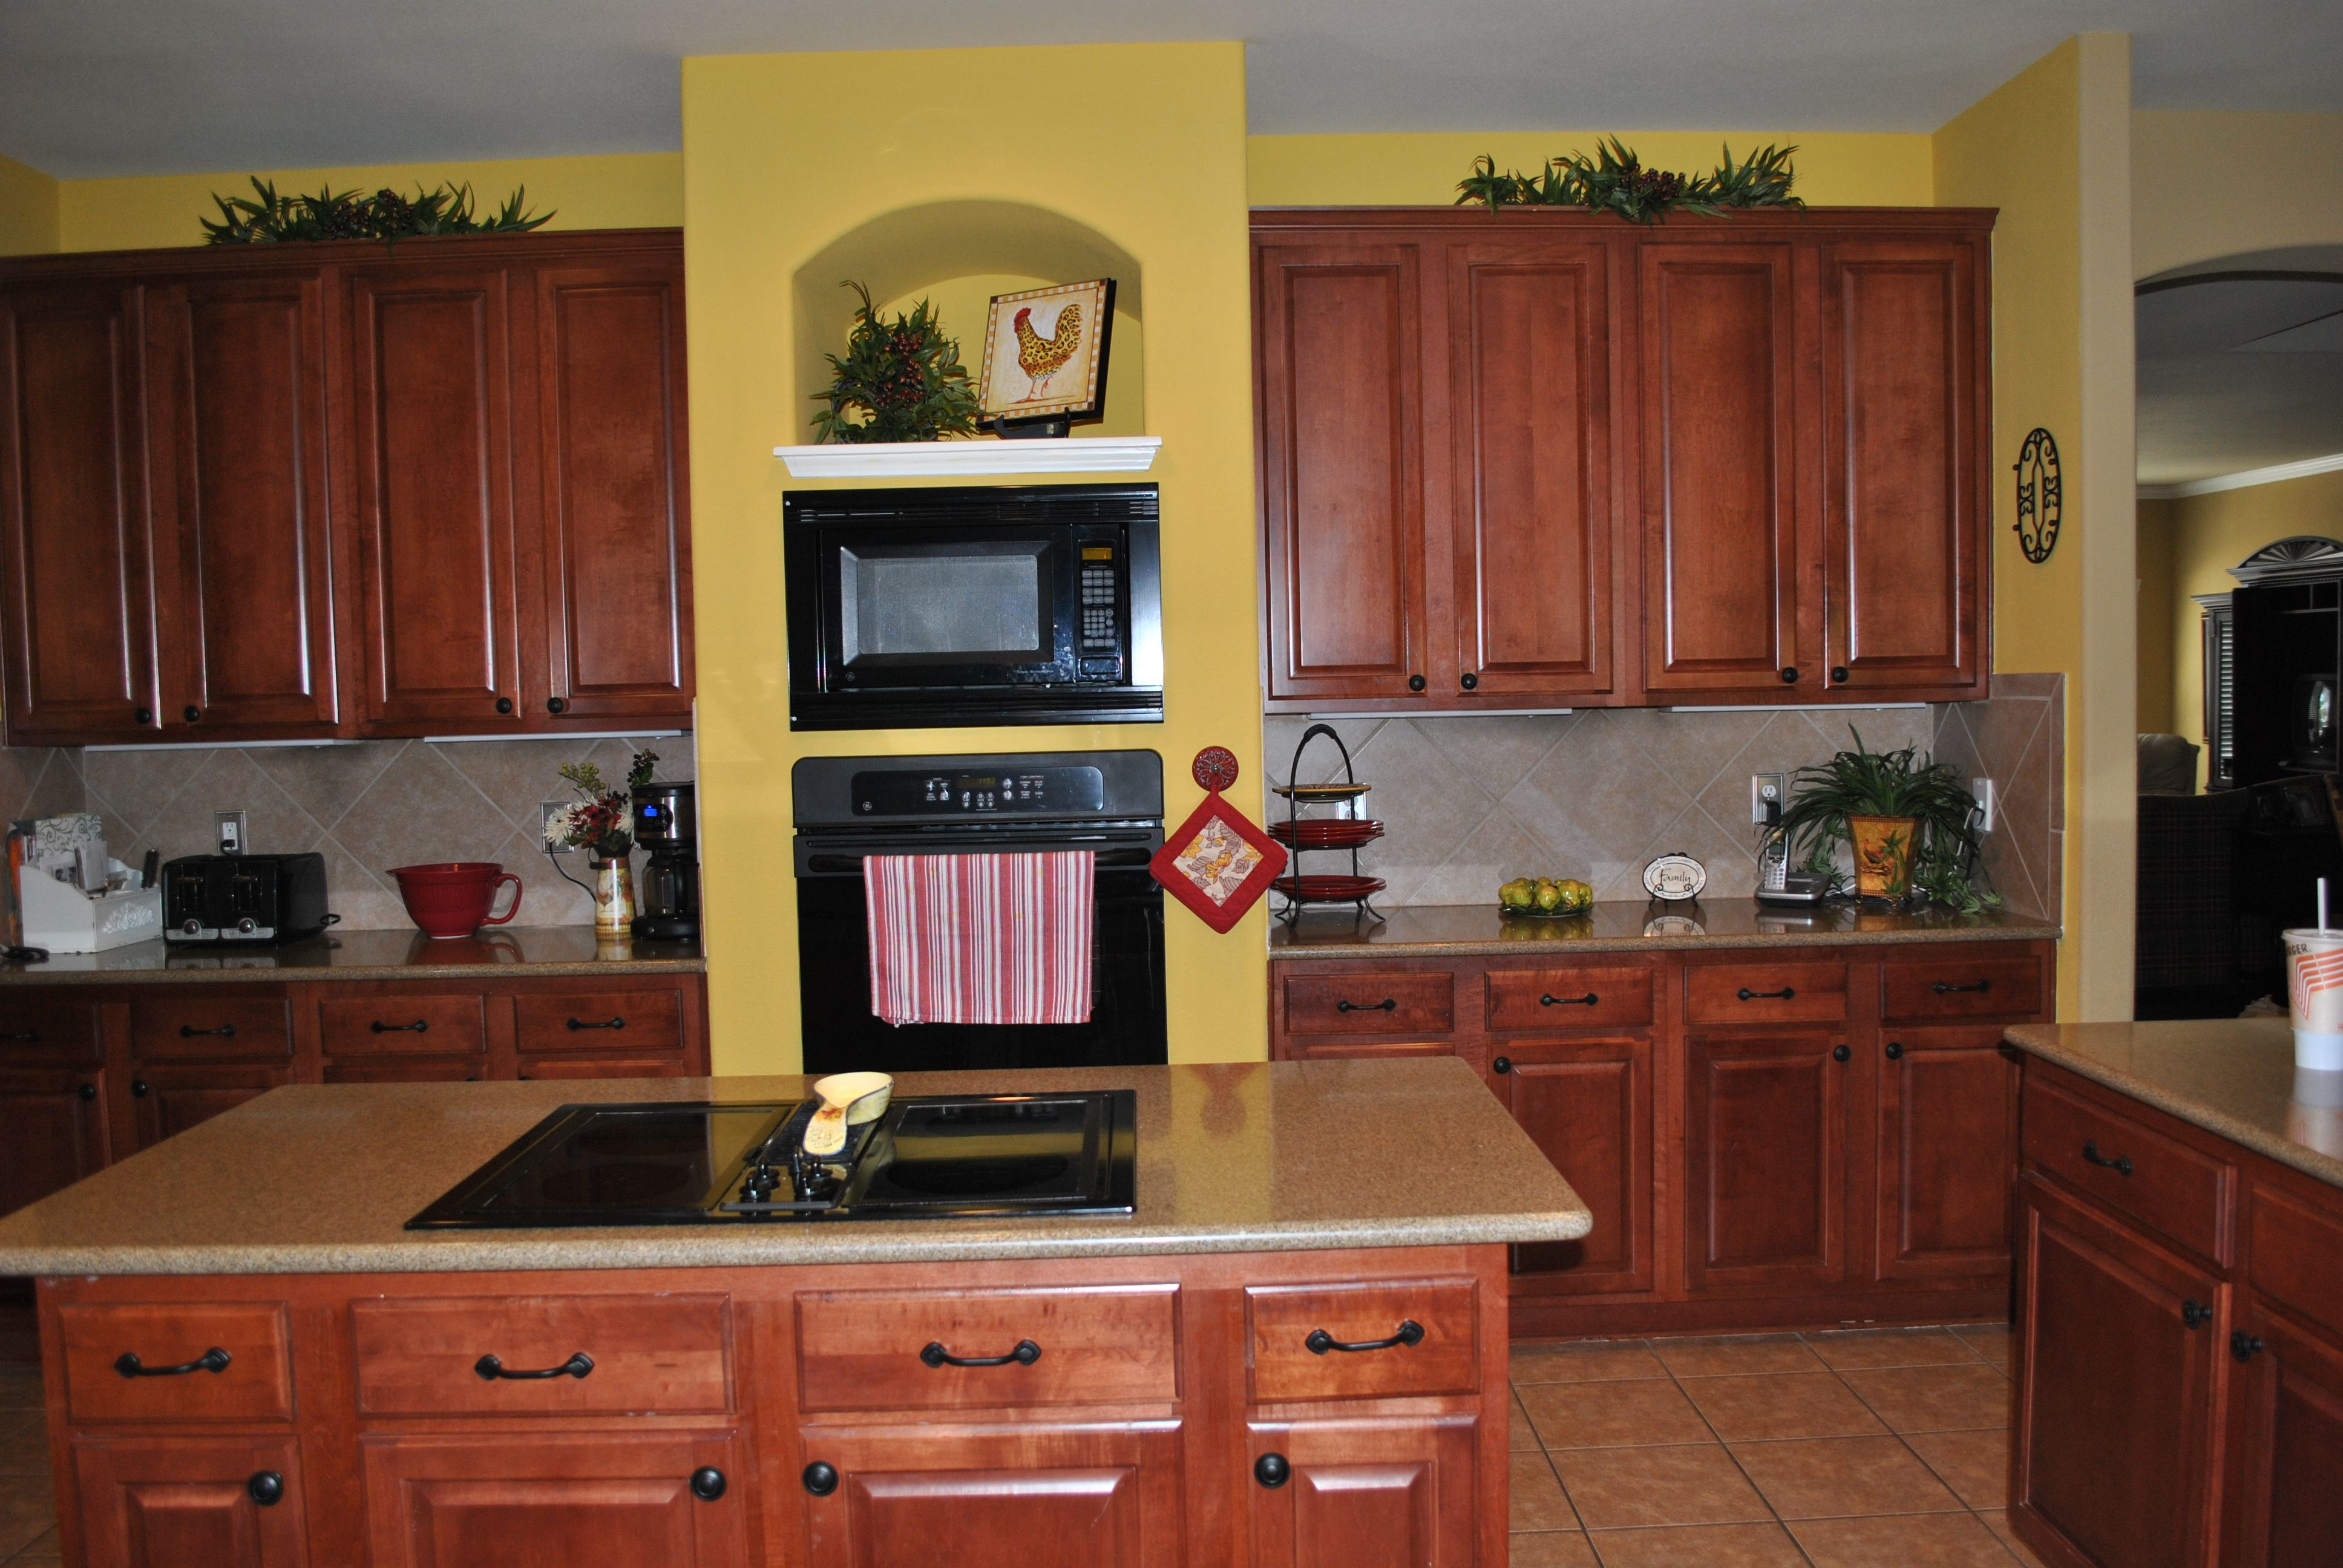 Kitchen Design Yellow Cabinets Yellow Kitchen Walls With Dark Cabinets I Don 39t Really